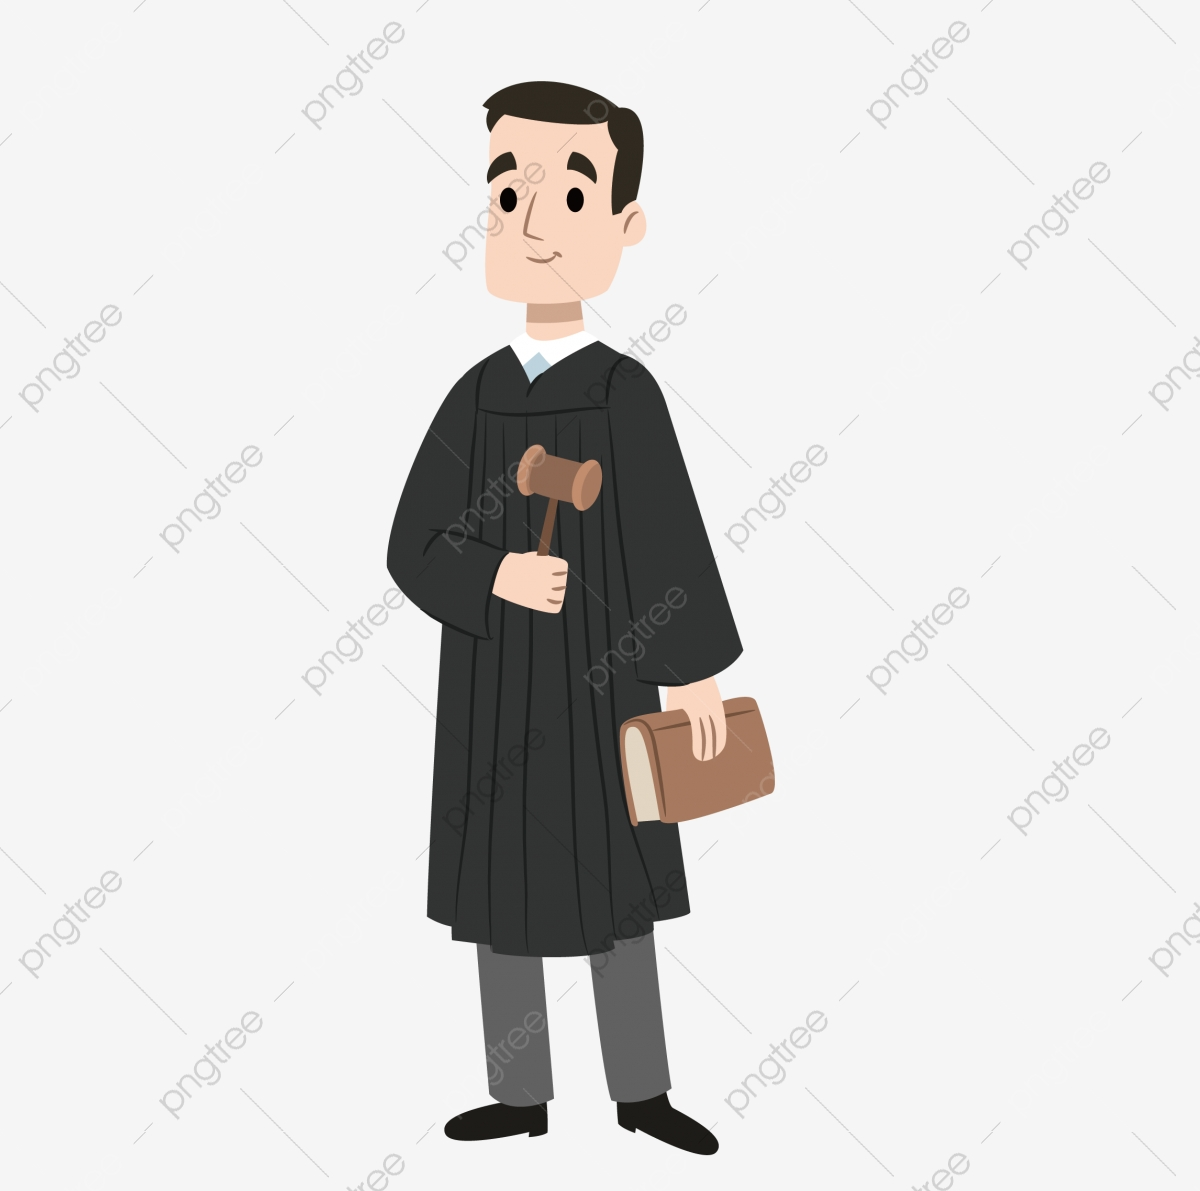 Cartoon Priest Vector, Cartoon Vector, Cartoon, Priest PNG.